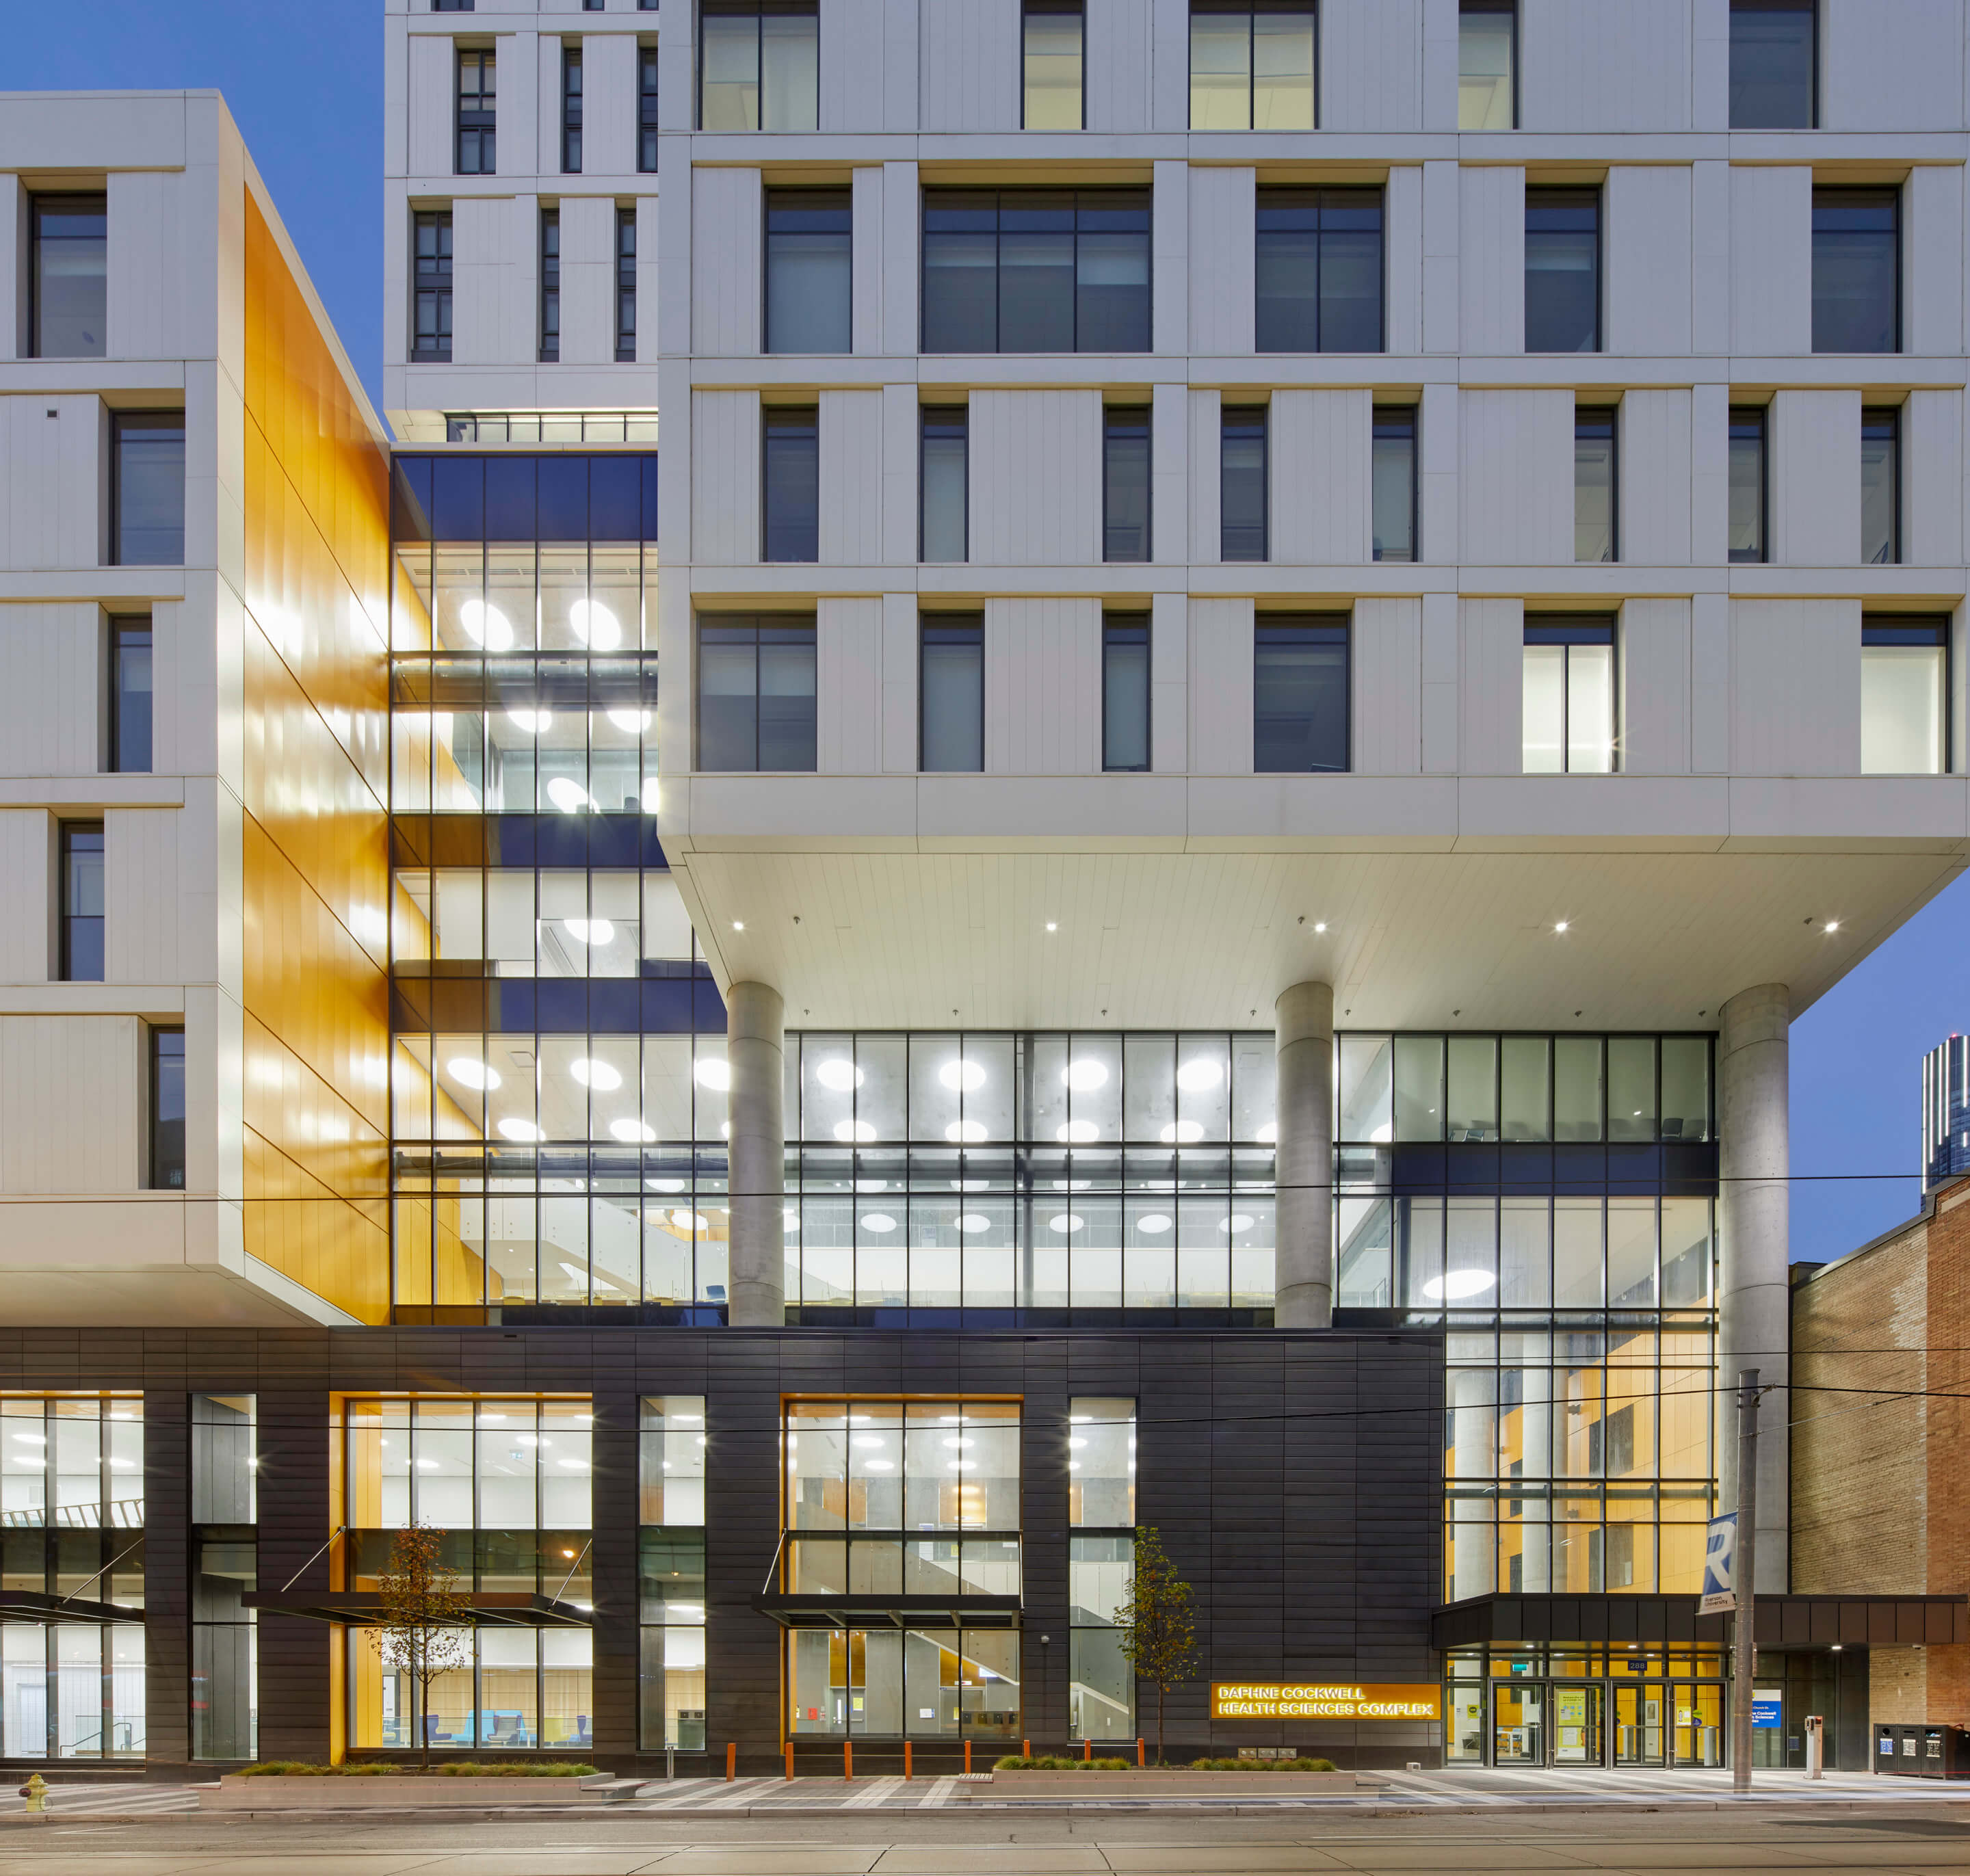 A multifaceted blocky building at Ryerson University